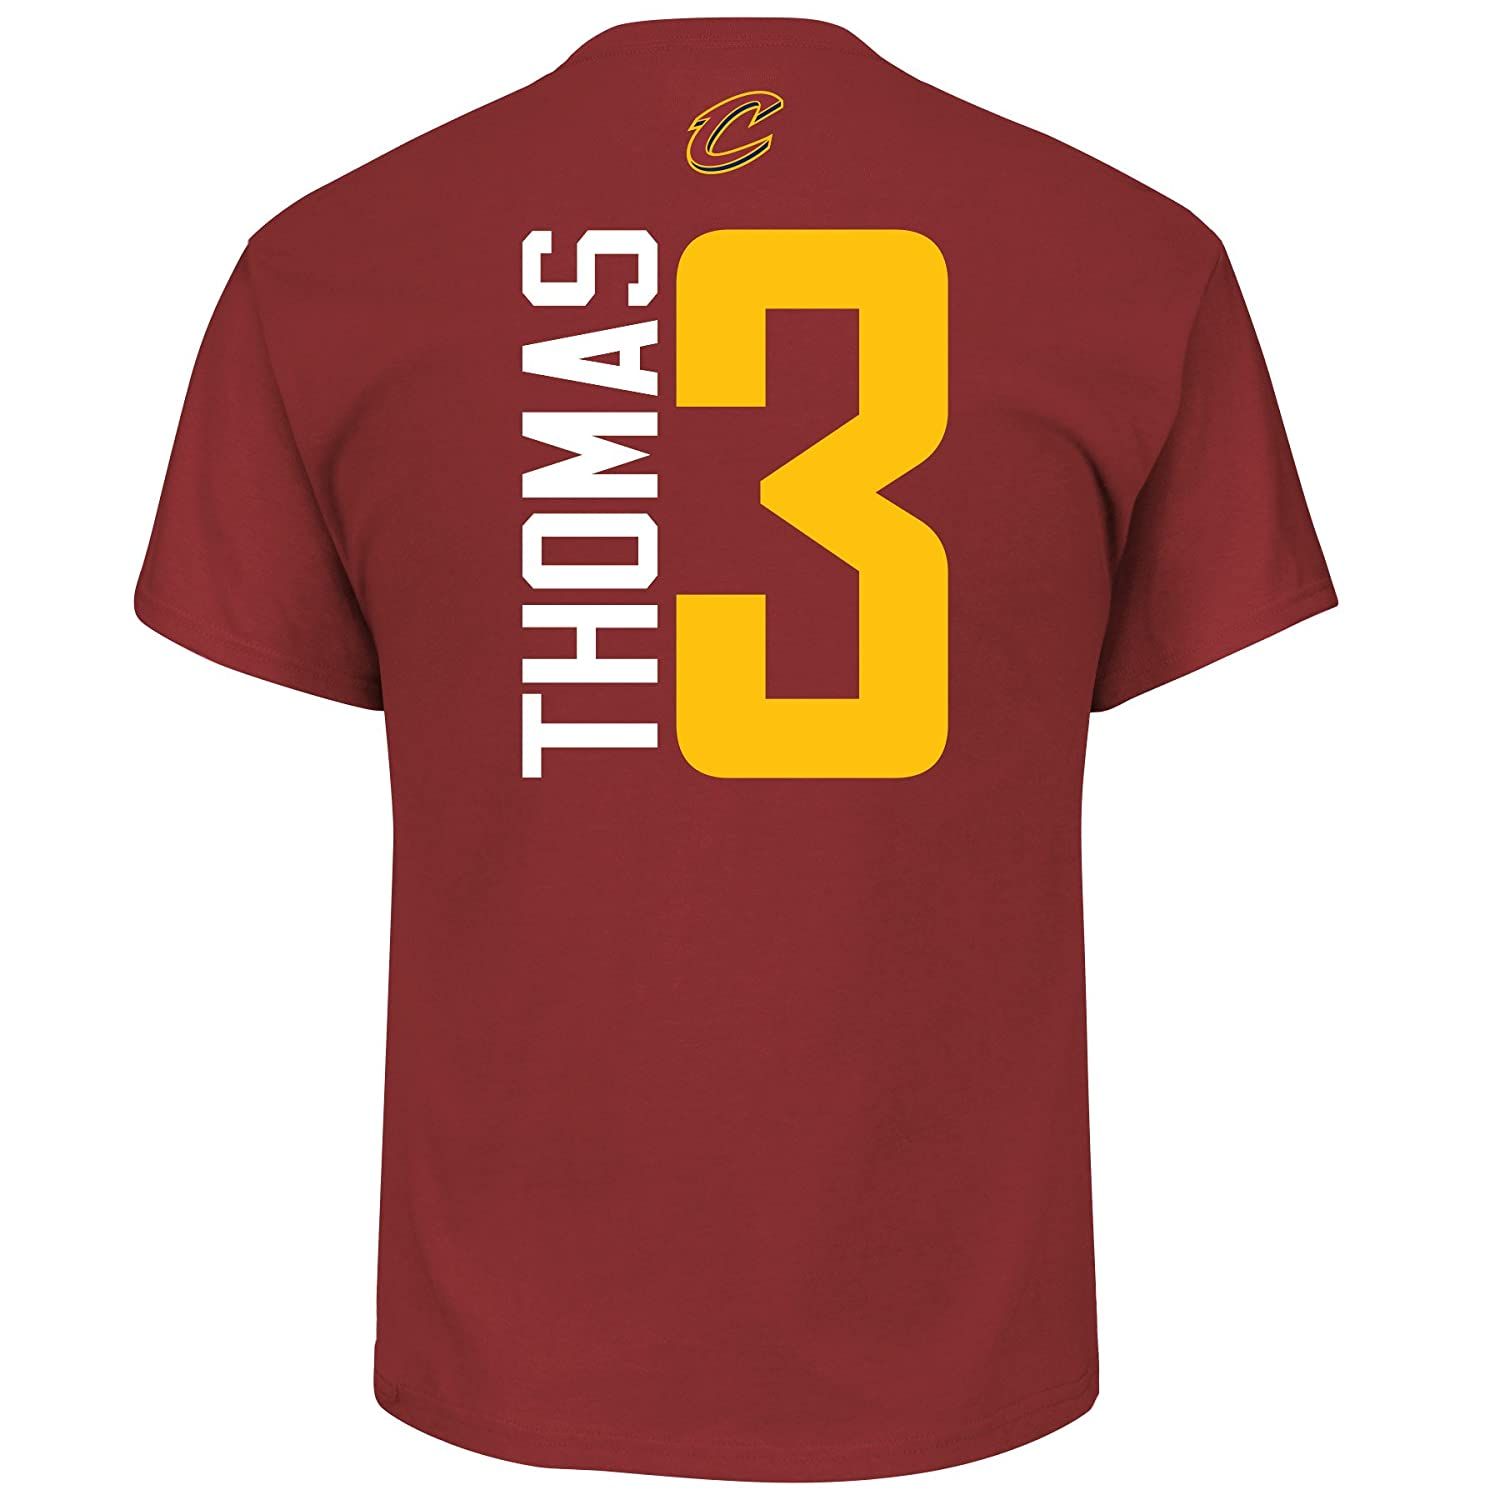 c4f79e526d0 Amazon.com   Cleveland Cavaliers Isaiah Thomas Vertical Player T-Shirt Red    Sports   Outdoors